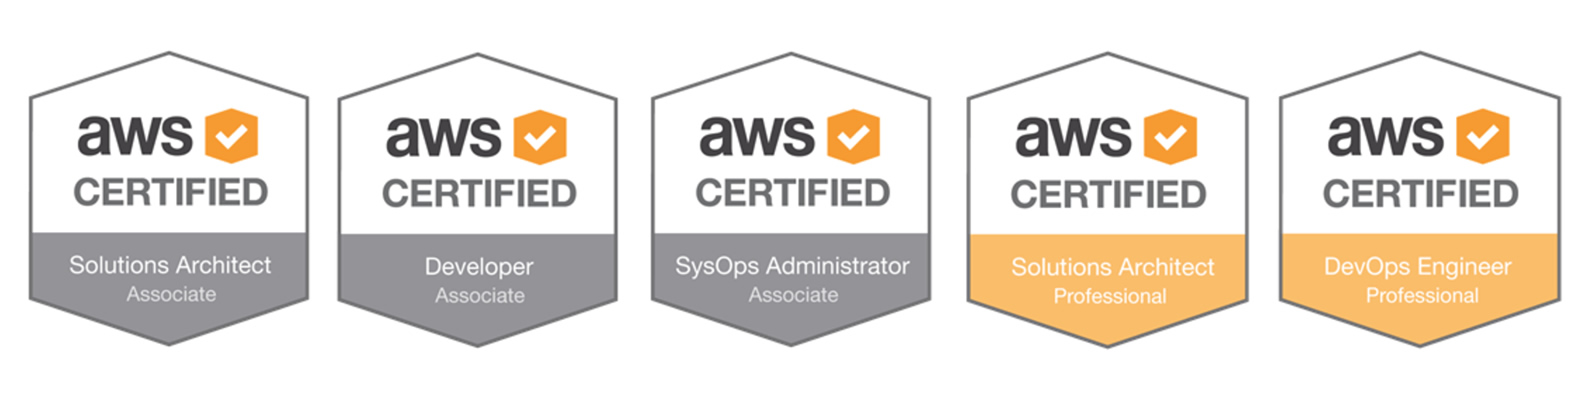 Amazon Web Services Aws Certified Cloud Practitioner Ccp